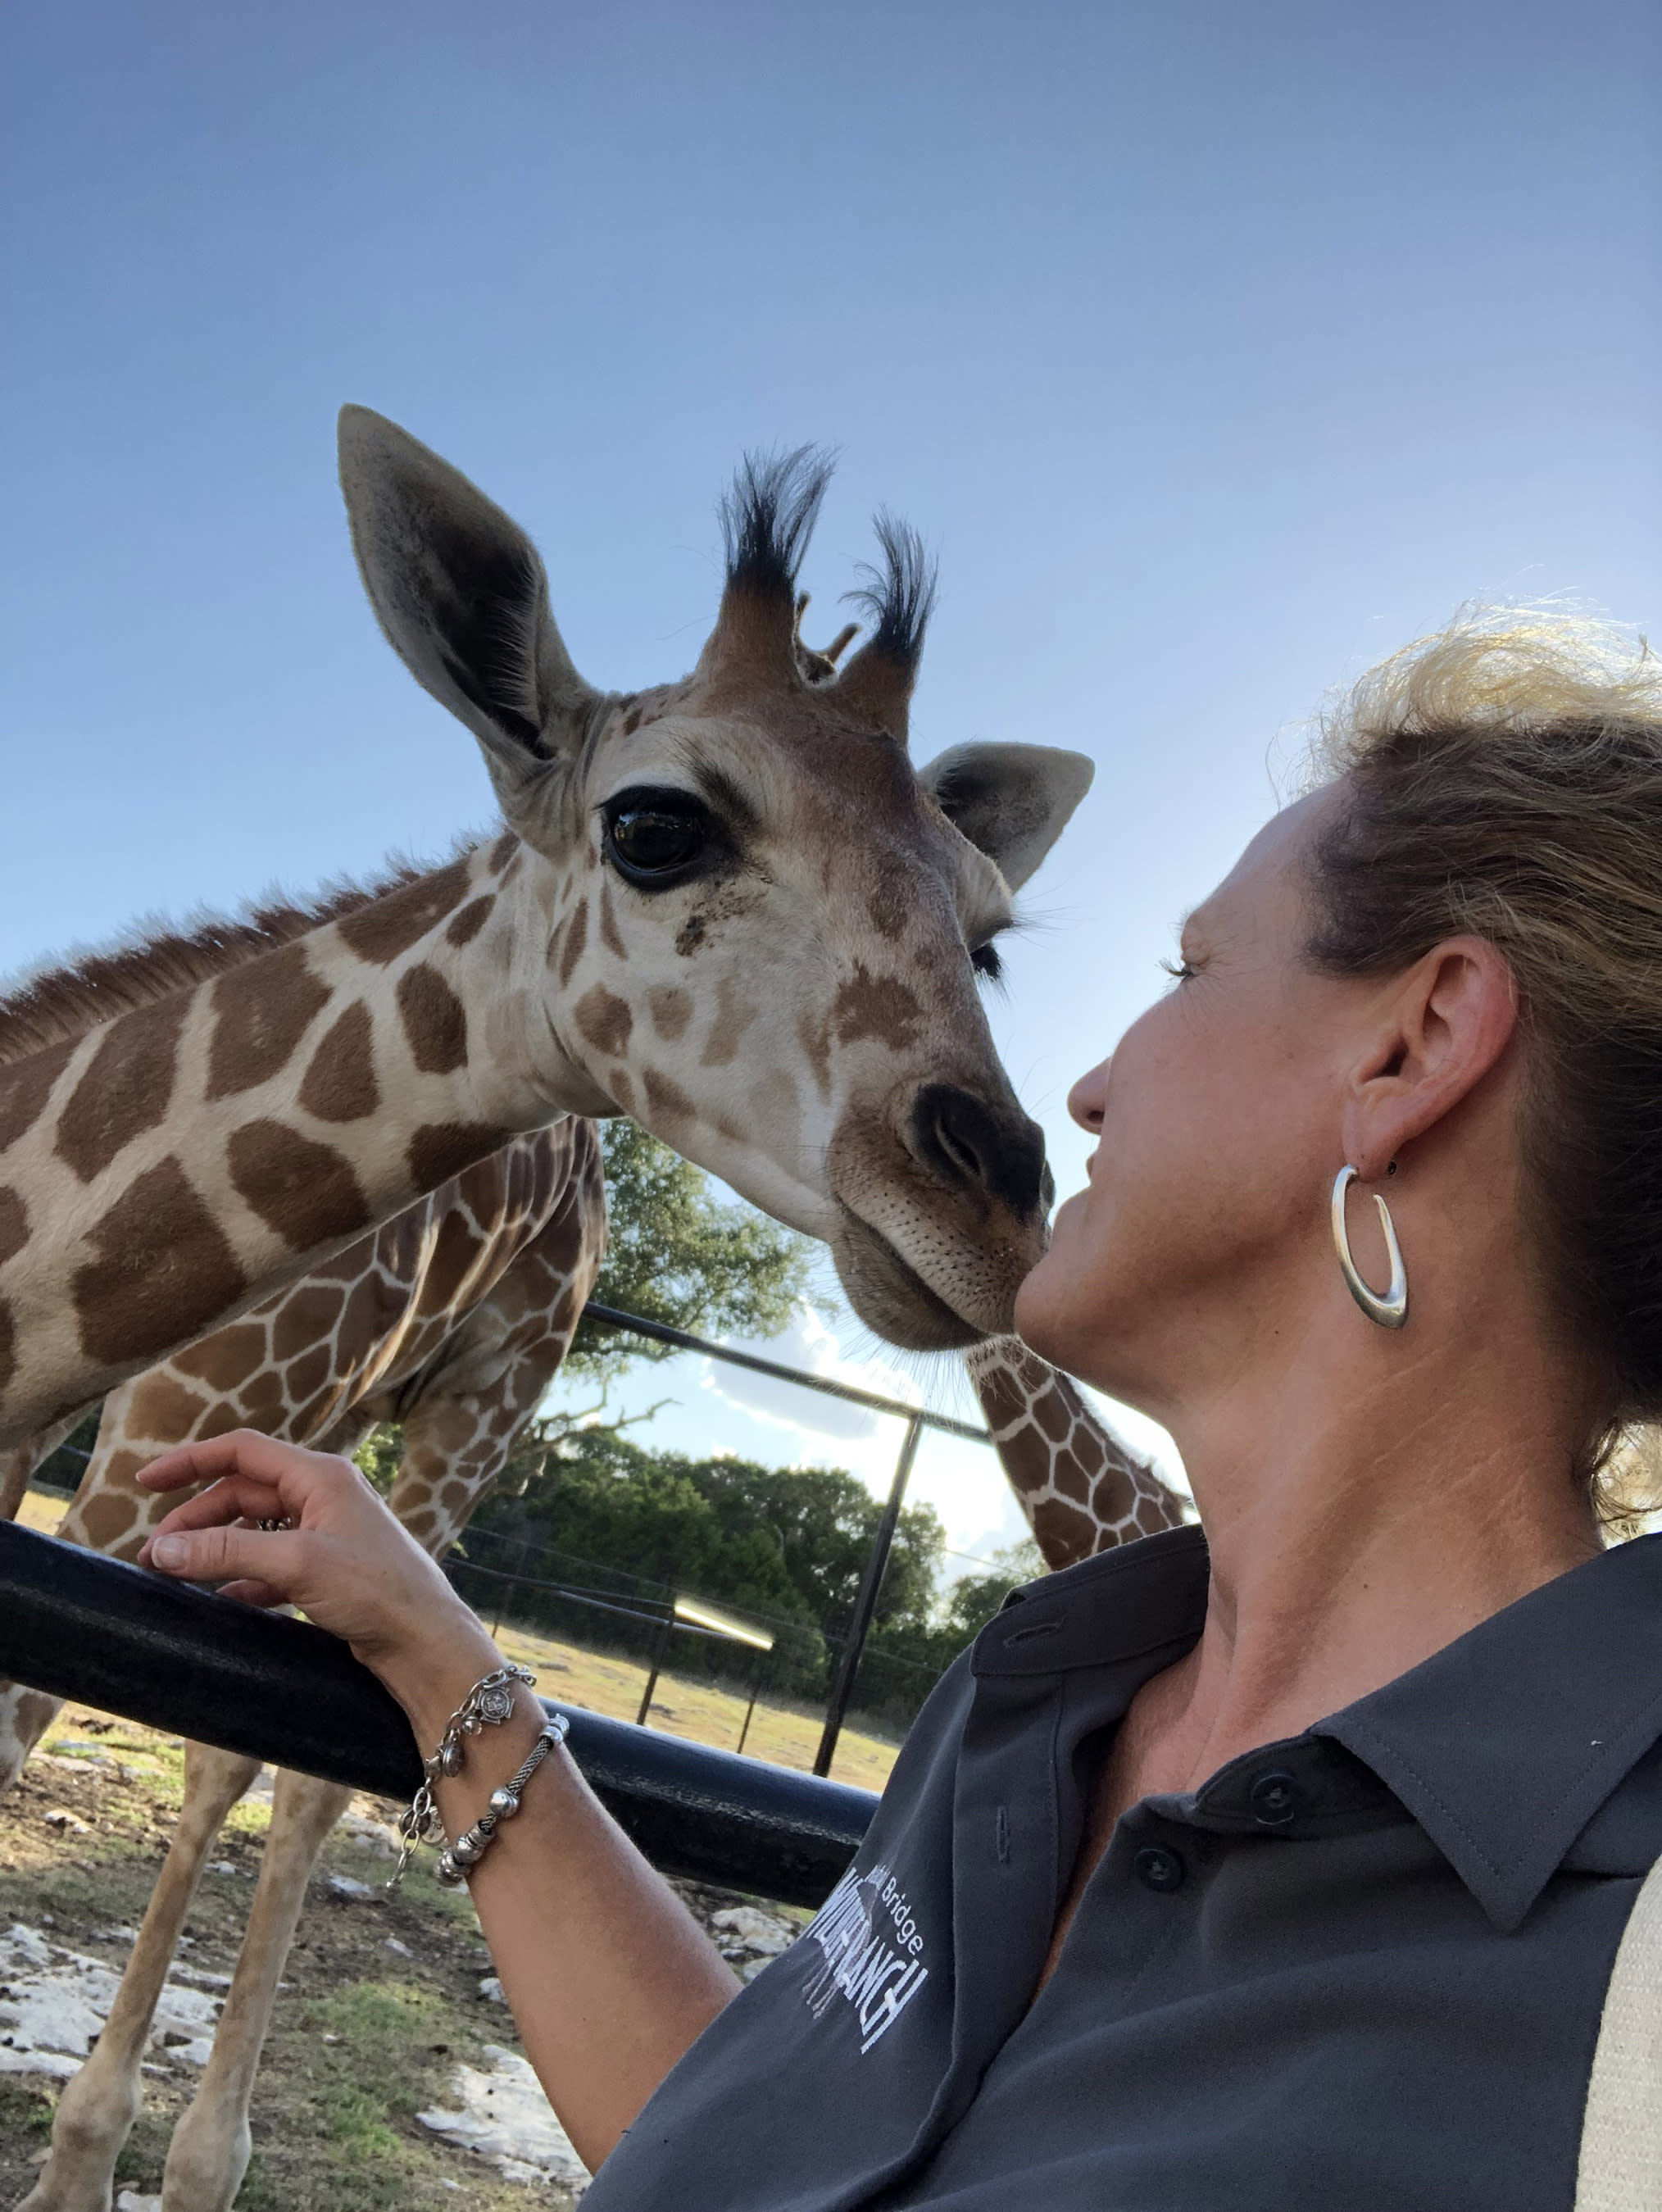 Natural Bridge Wildlife Ranch's successful giraffe breeding spawned rare twin giraffes in 2013. Get up close to the giraffes, and over 500 other animals from 40 exotic, native and endangered species as you drive through their 450-acre ranch.